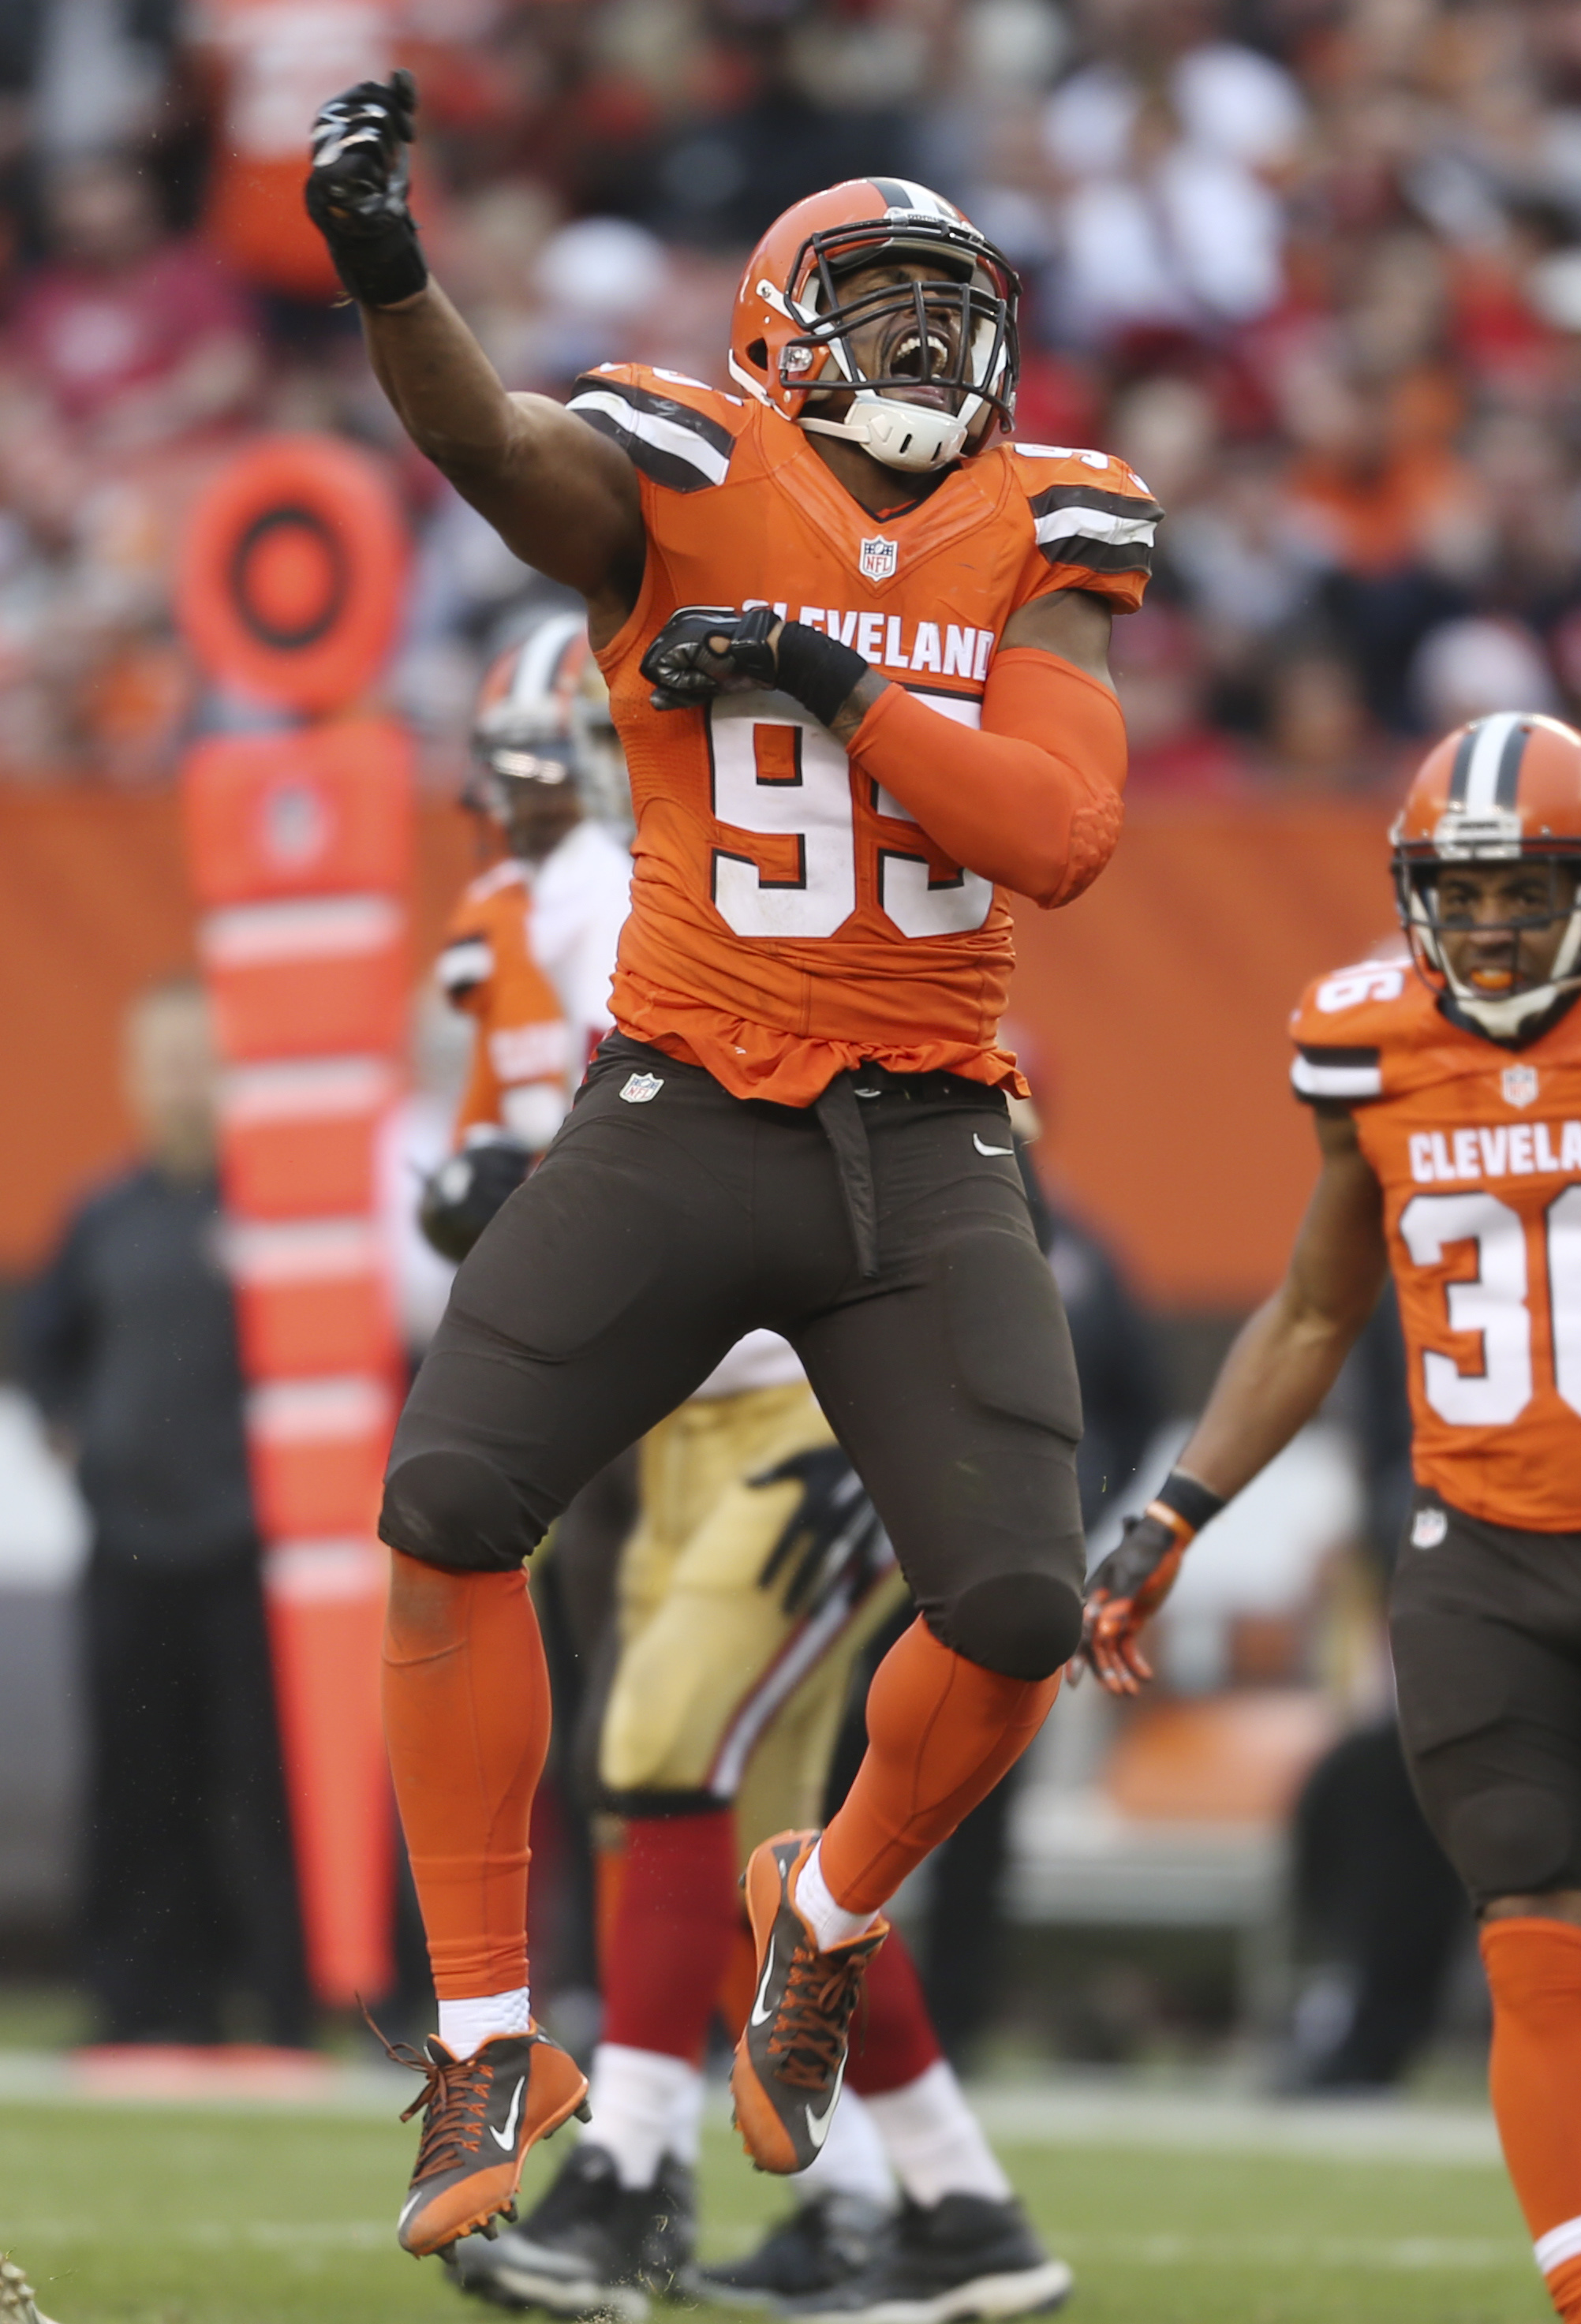 FILE - In this Sunday, Dec. 13, 2015, file photo, Cleveland Browns defensive end Armonty Bryant (95) celebrates after sacking San Francisco 49ers quarterback Blaine Gabbert (2) during the second half of an NFL football game, in Cleveland. Bryant will not